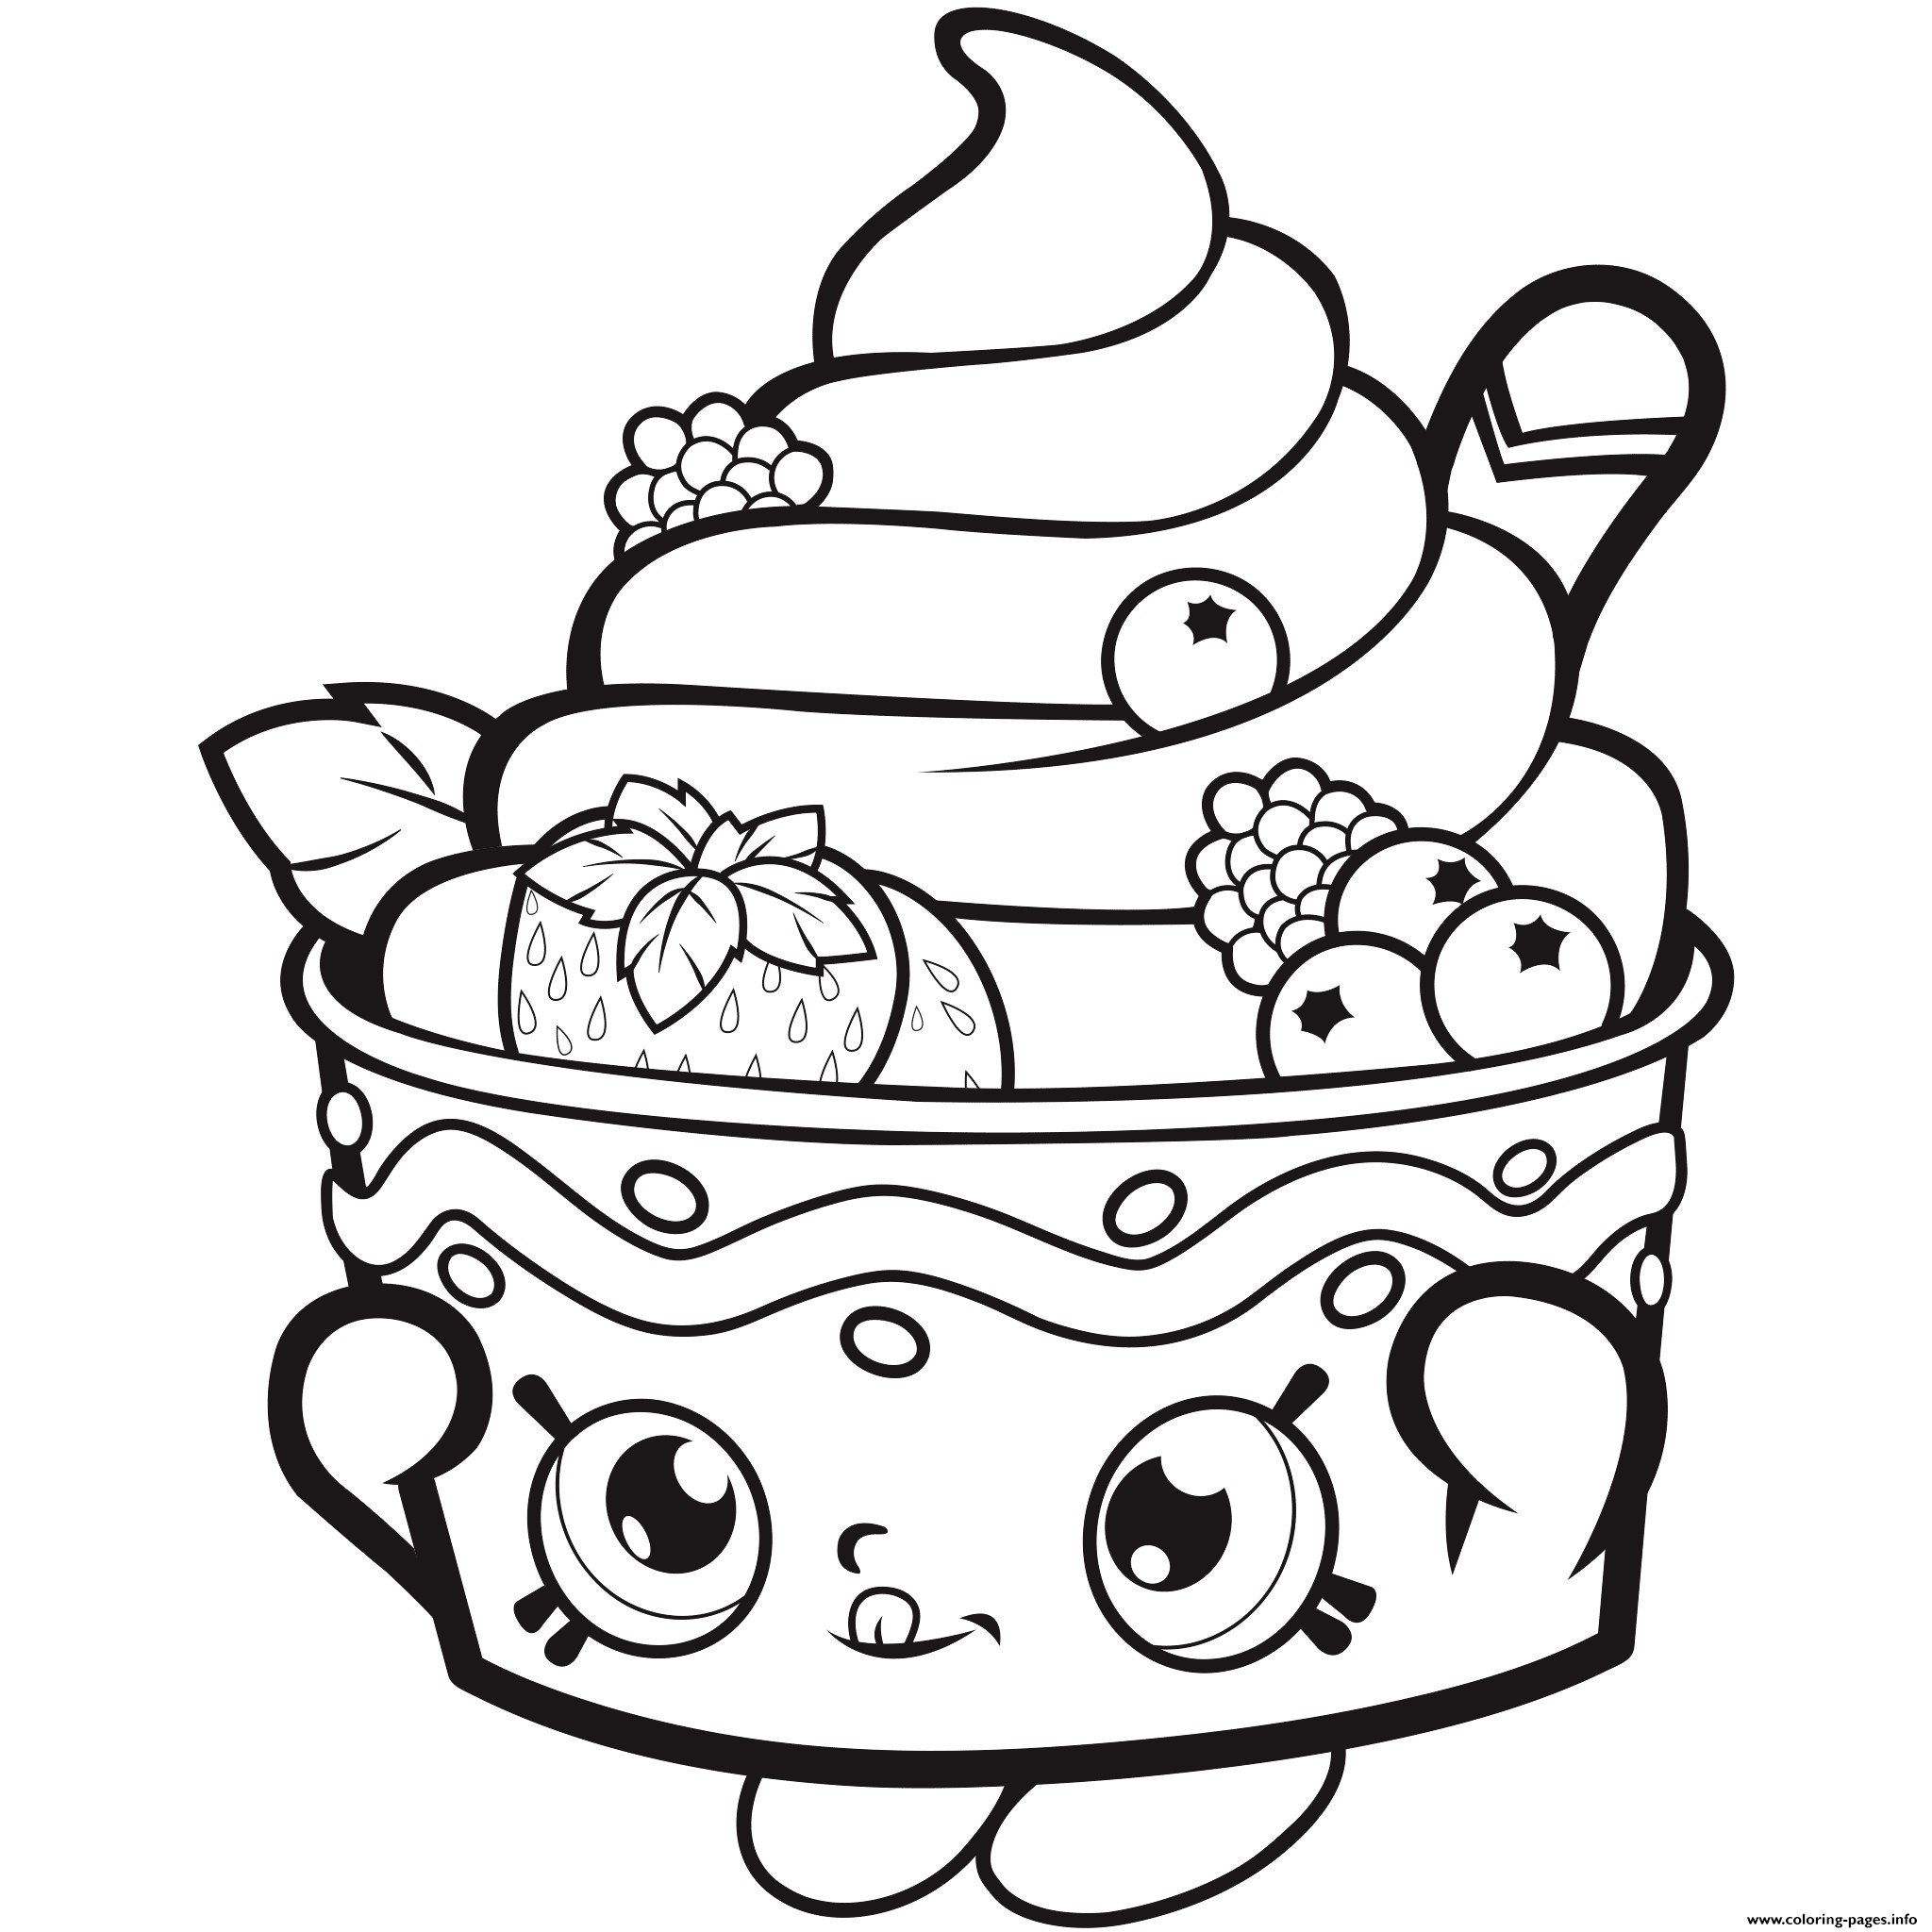 2048x2048 Color Pages To Print Unique Shopkins Coloring Pages To Print